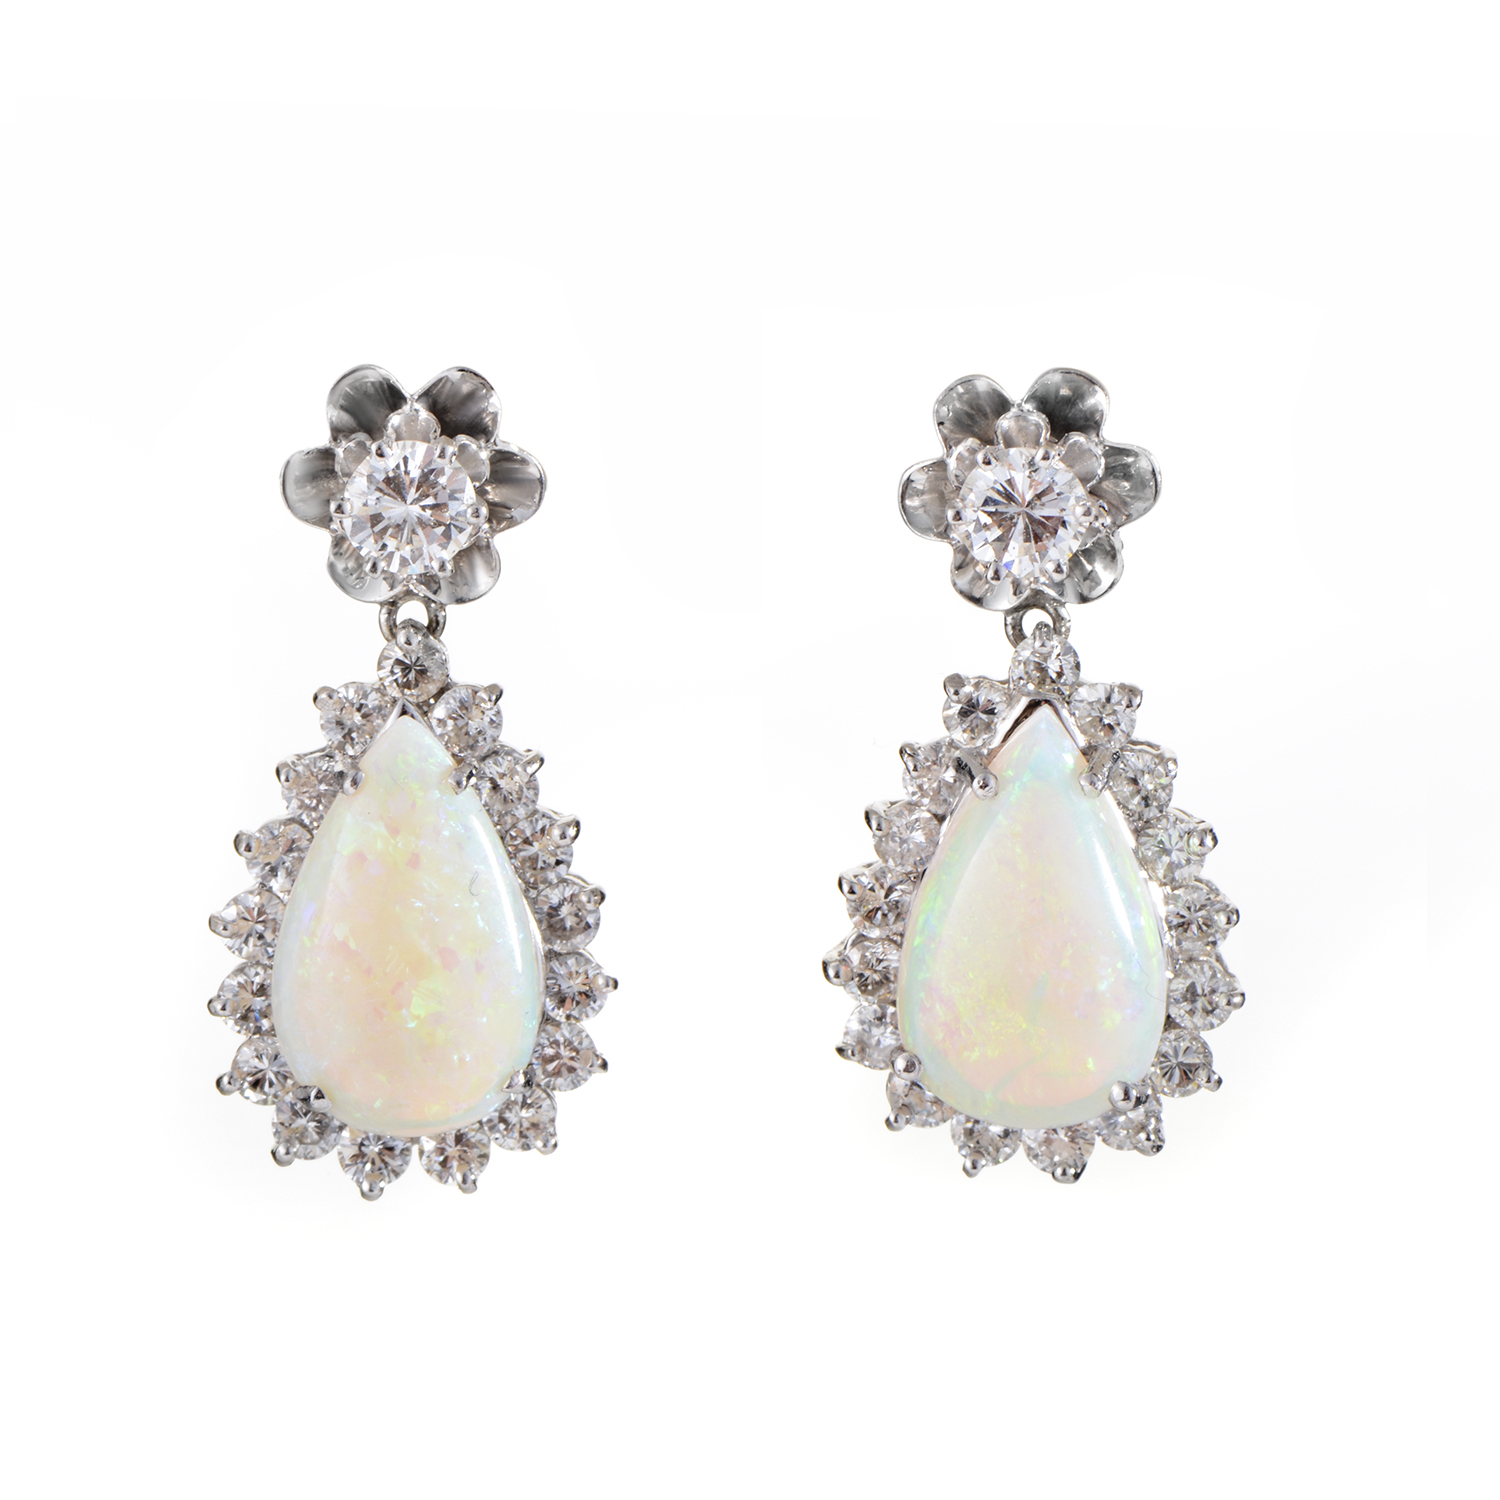 14K White Gold Diamond & Opal Dangle Earrings